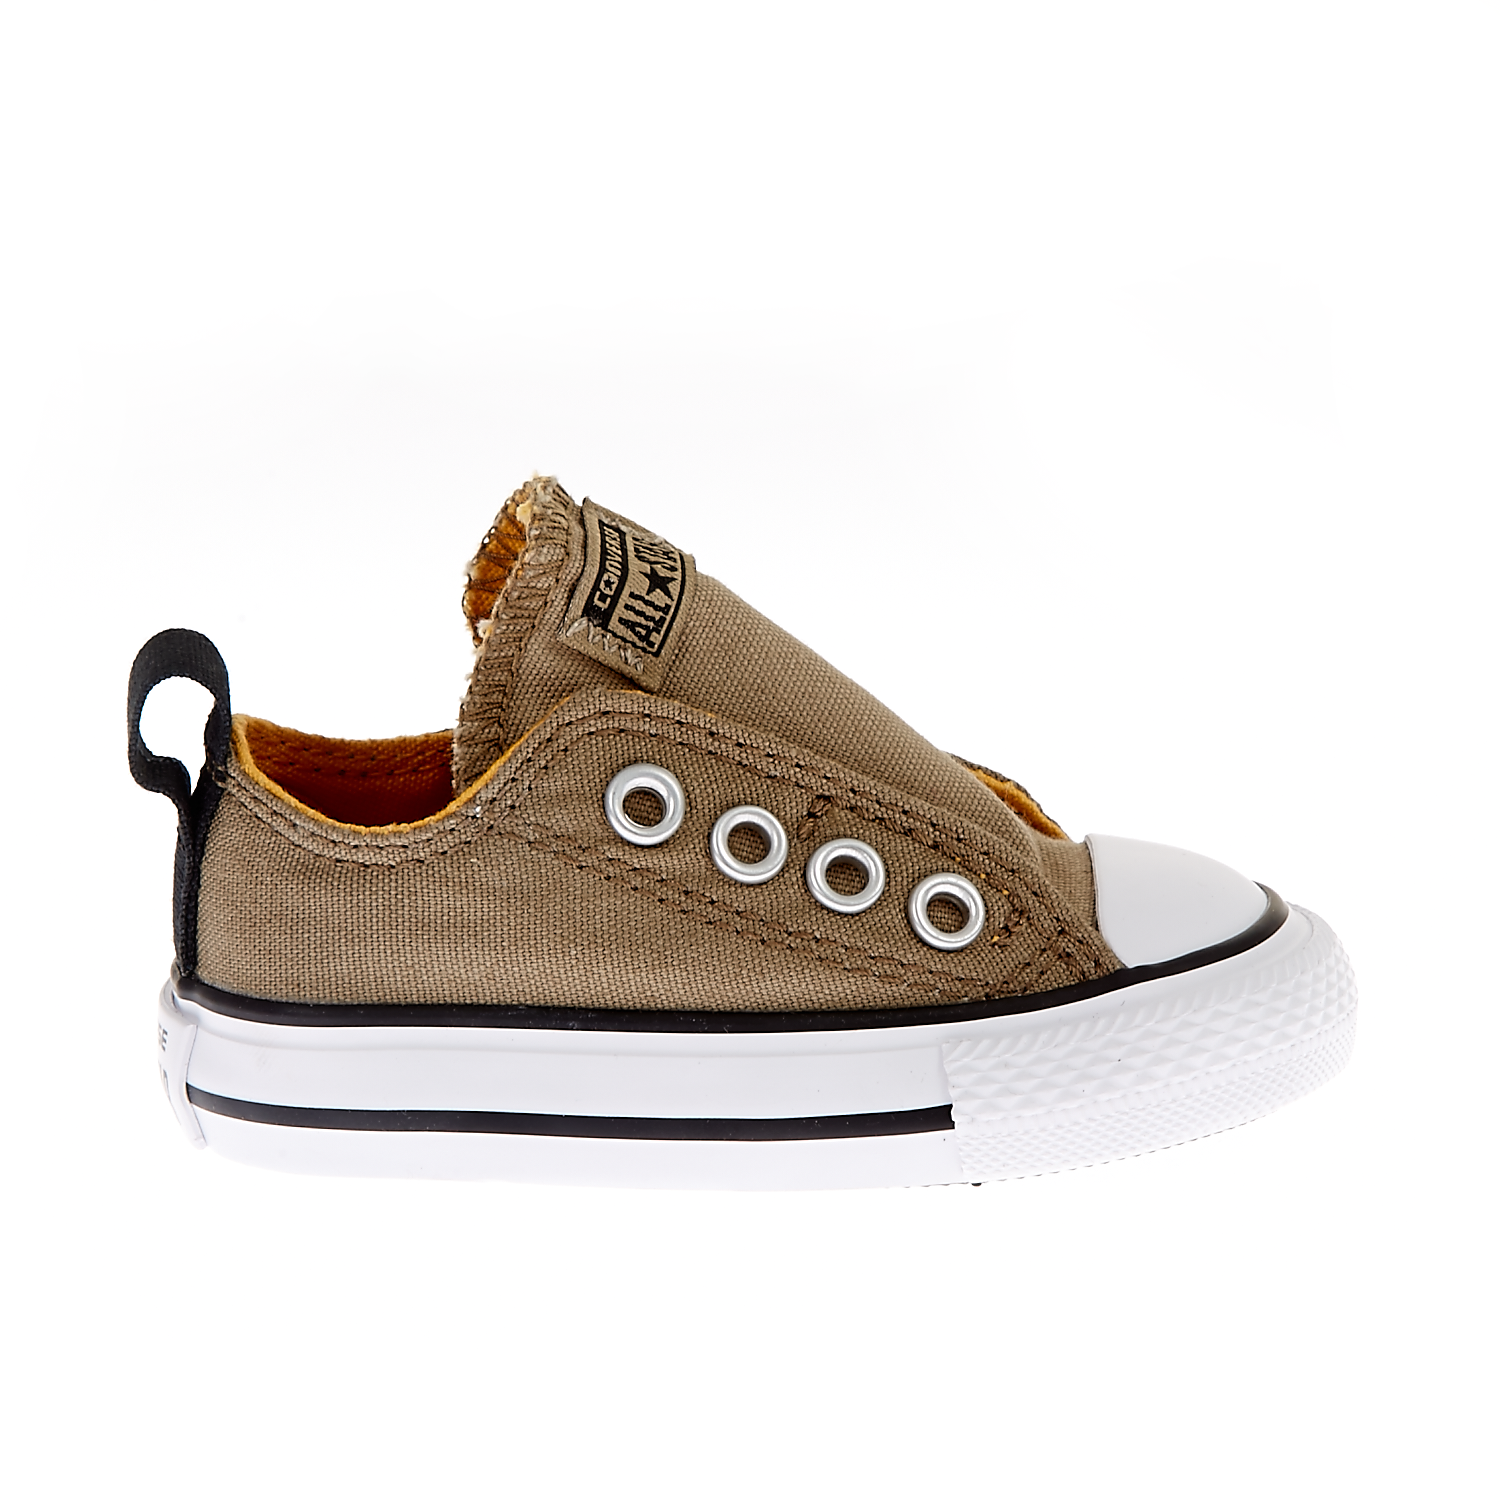 CONVERSE – Βρεφικά παπούστια Chuck Taylor All Star Simple S μπεζ